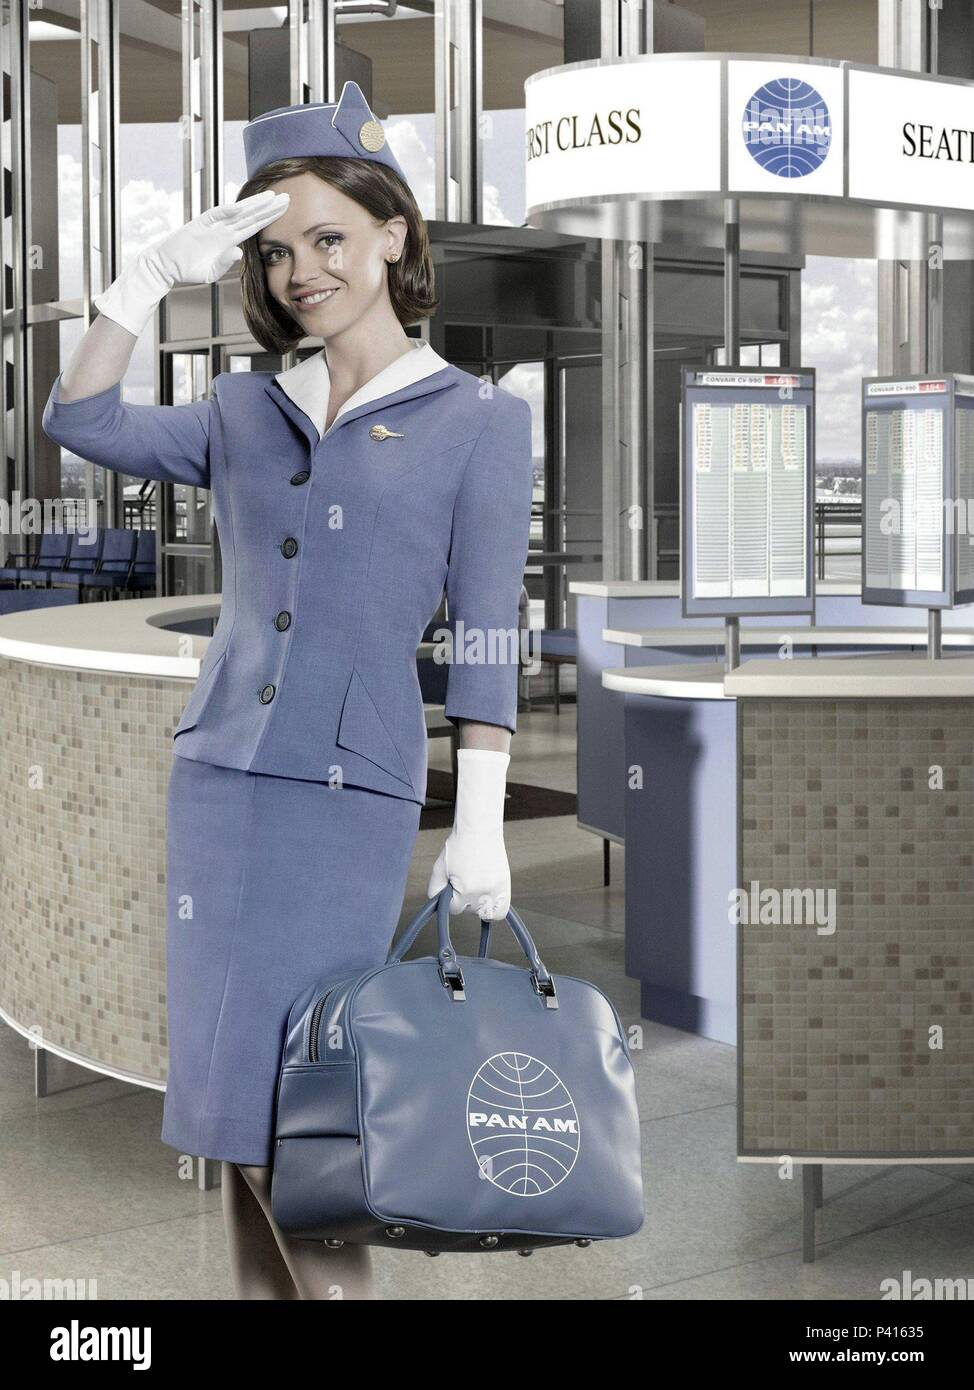 091f97c140a Pan Am Stewardess Stock Photos & Pan Am Stewardess Stock Images - Alamy